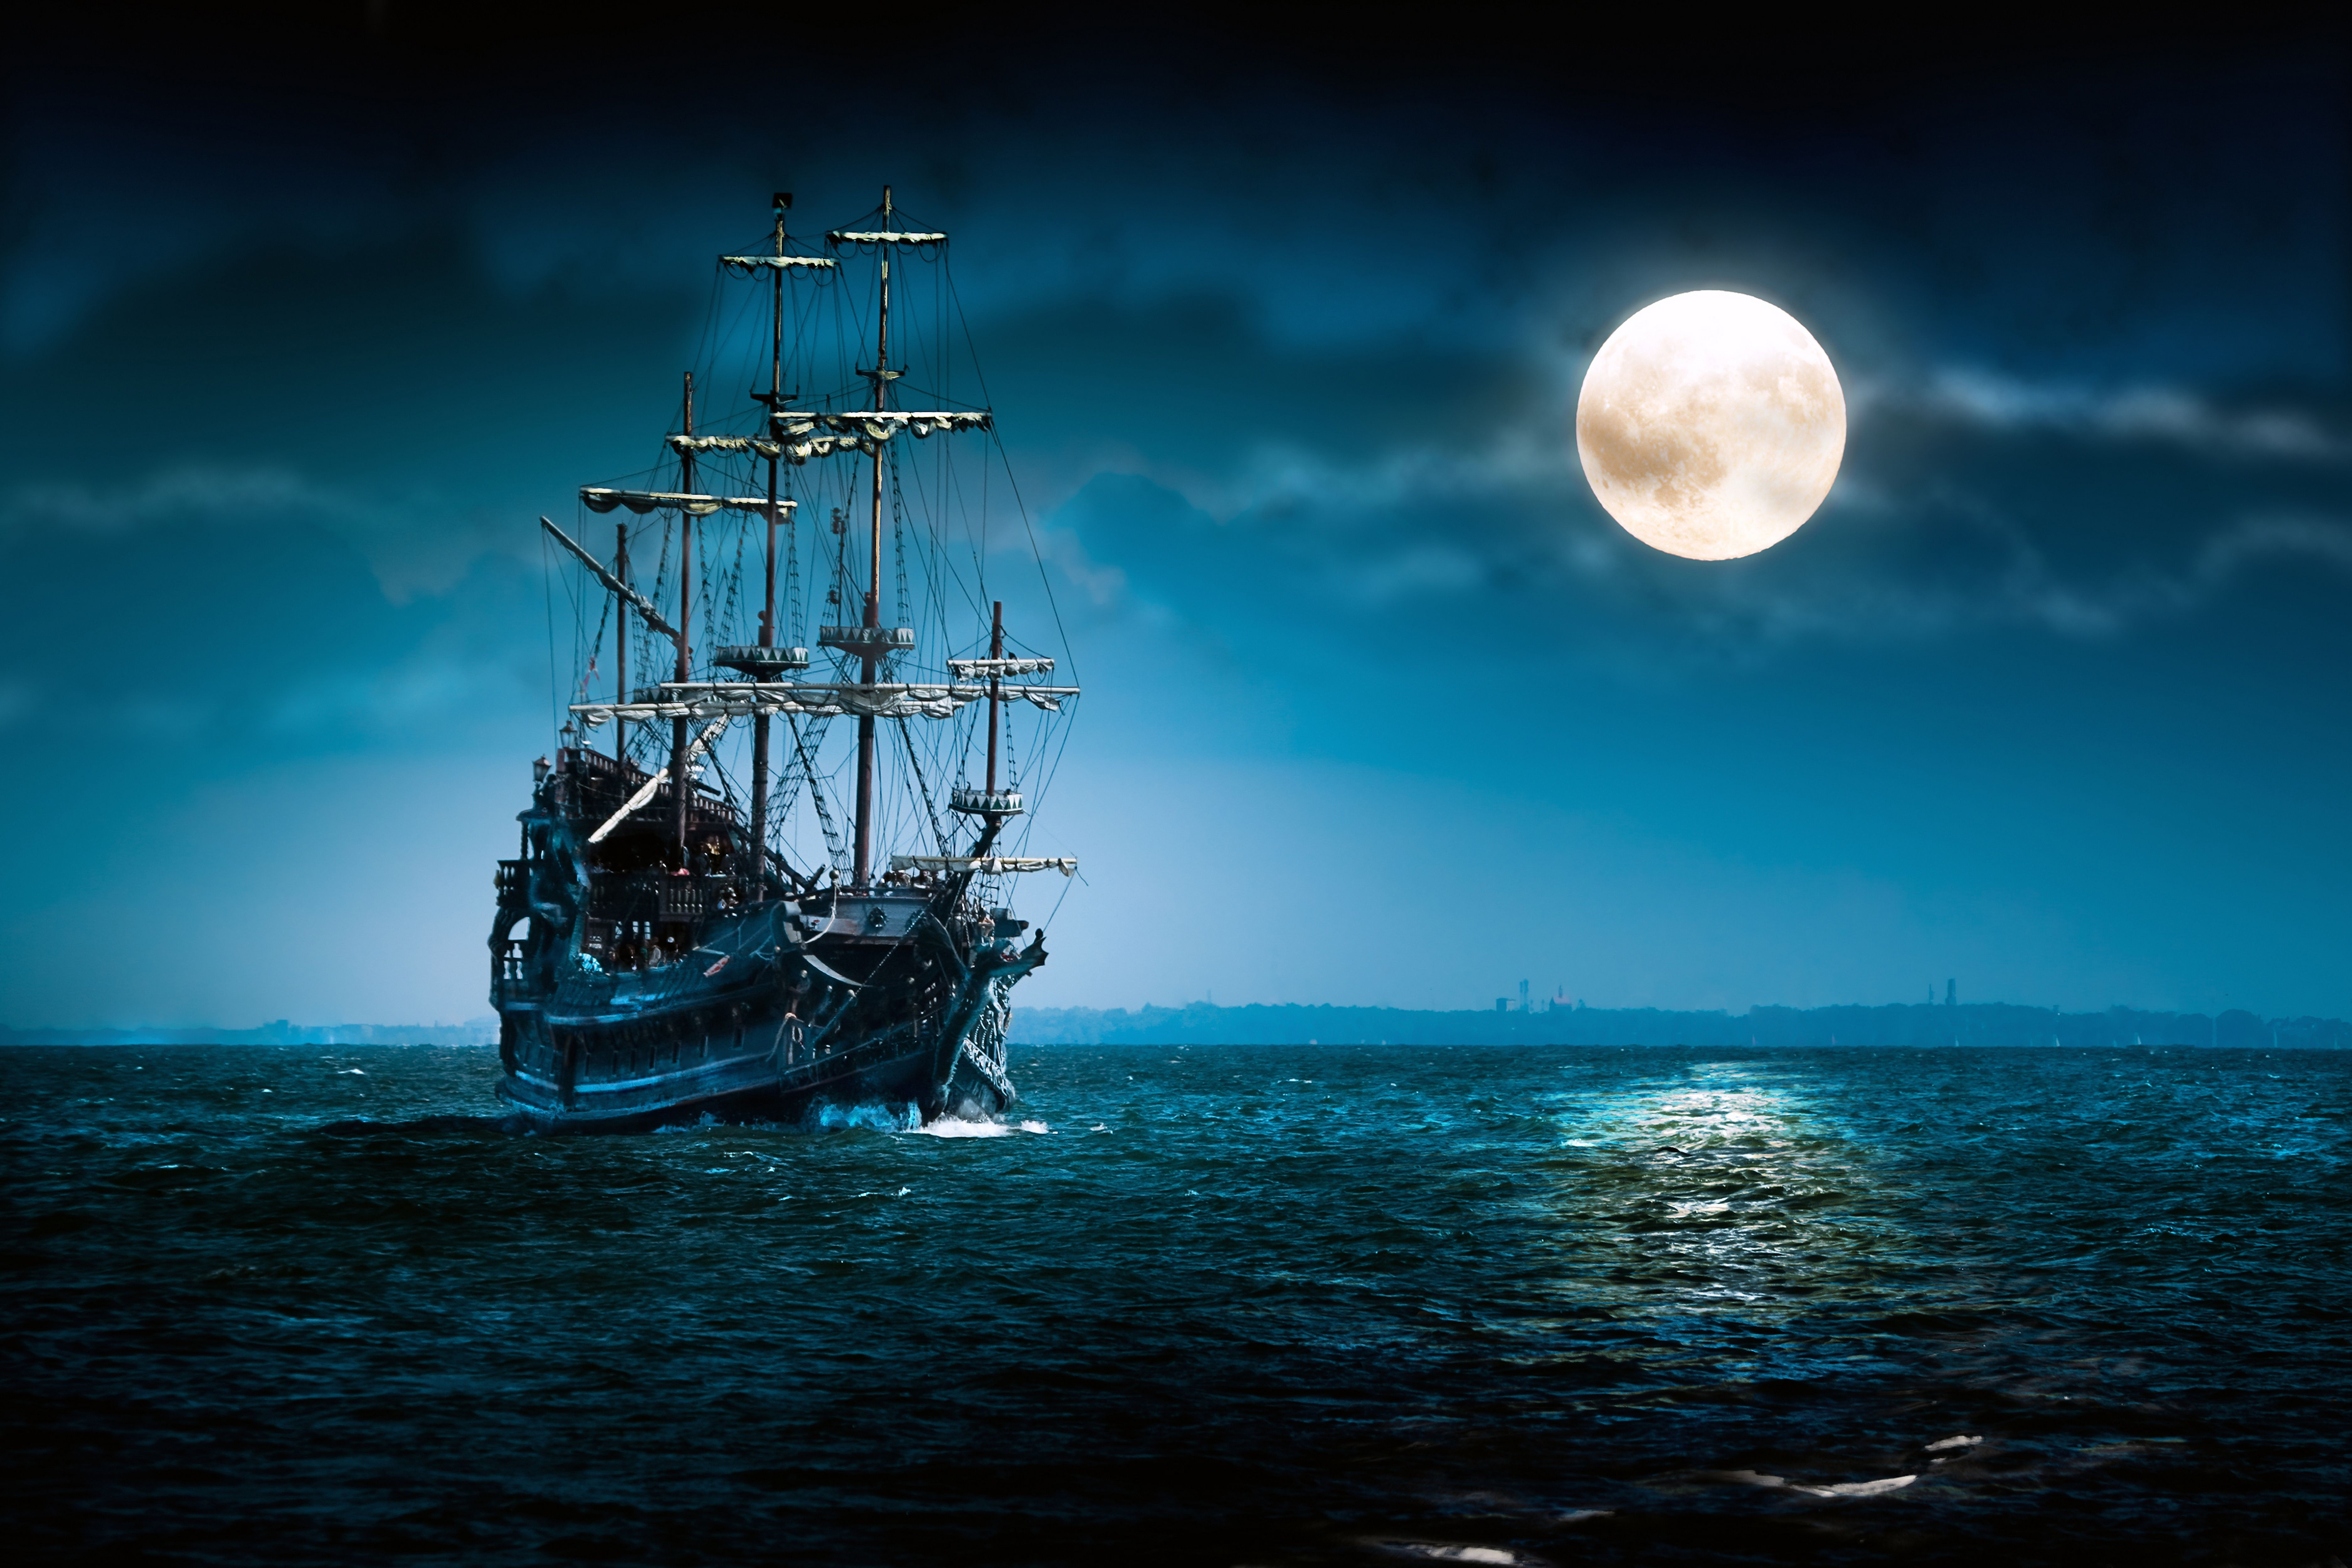 Ships at Night Wallpapers   Top Ships at Night Backgrounds 7500x5000